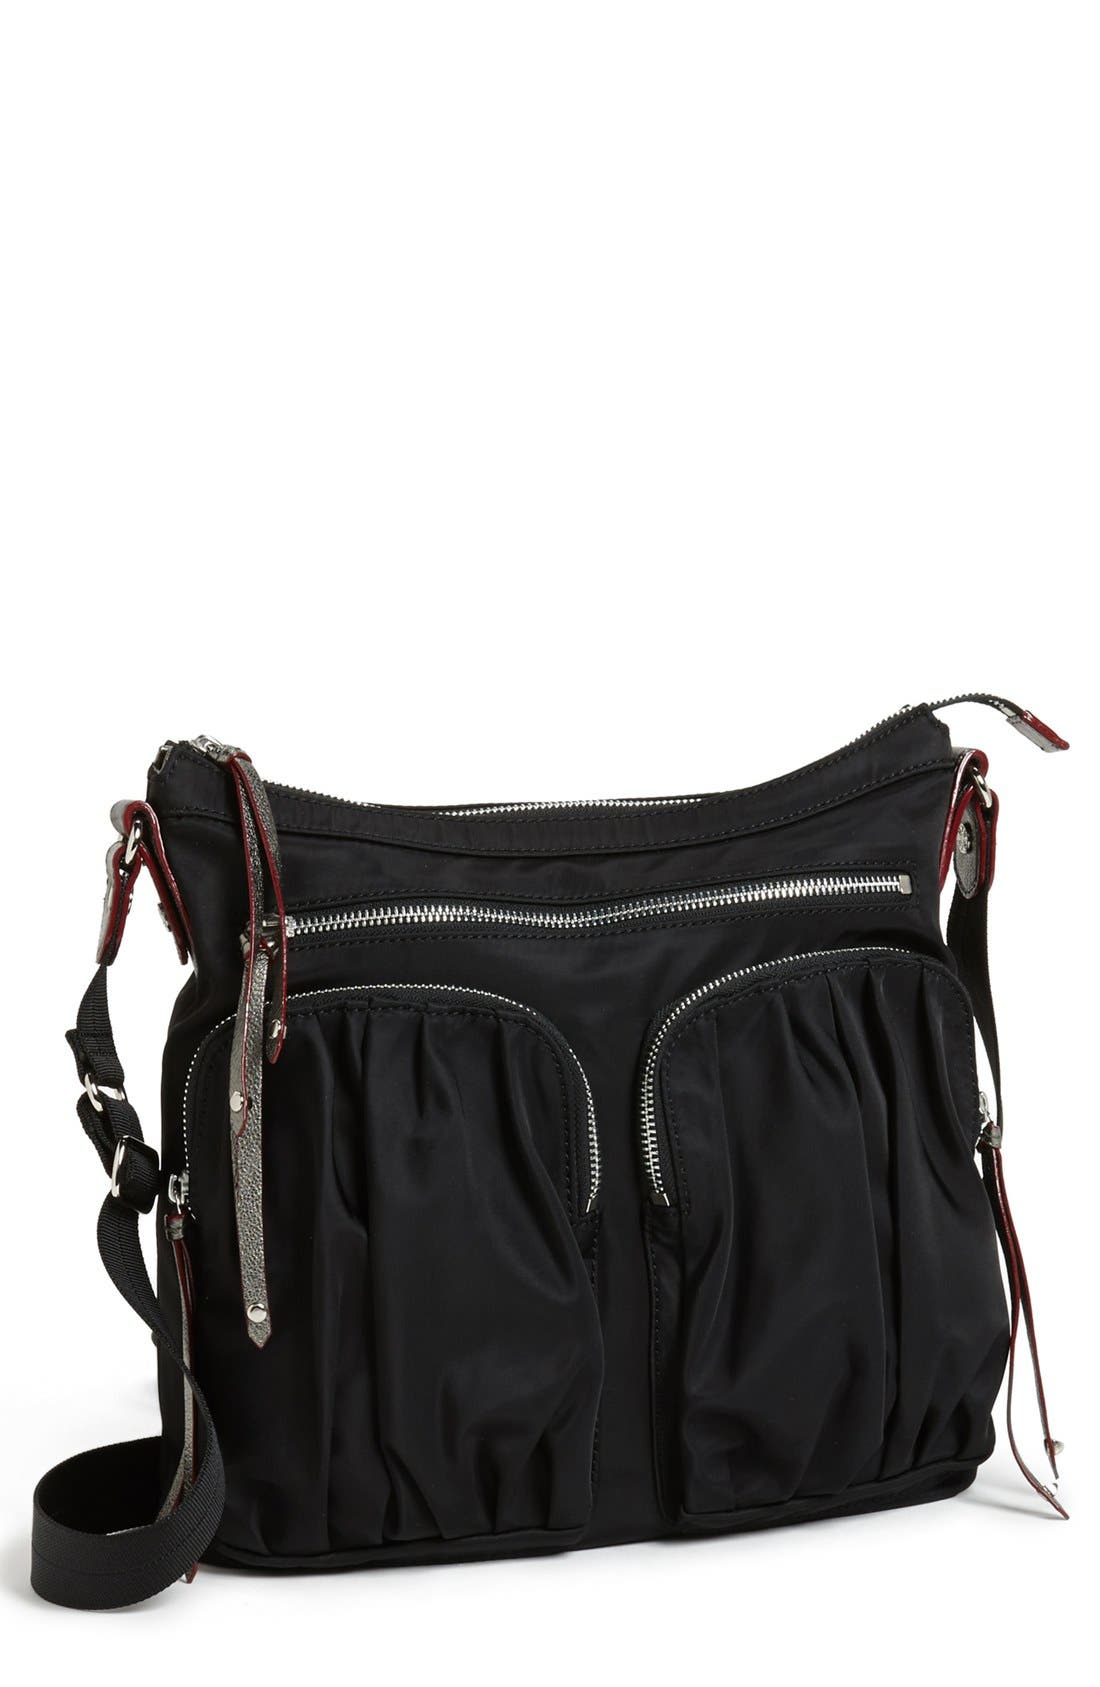 Alternate Image 1 Selected - MZ Wallace 'Mia' Bedford Nylon Crossbody Bag